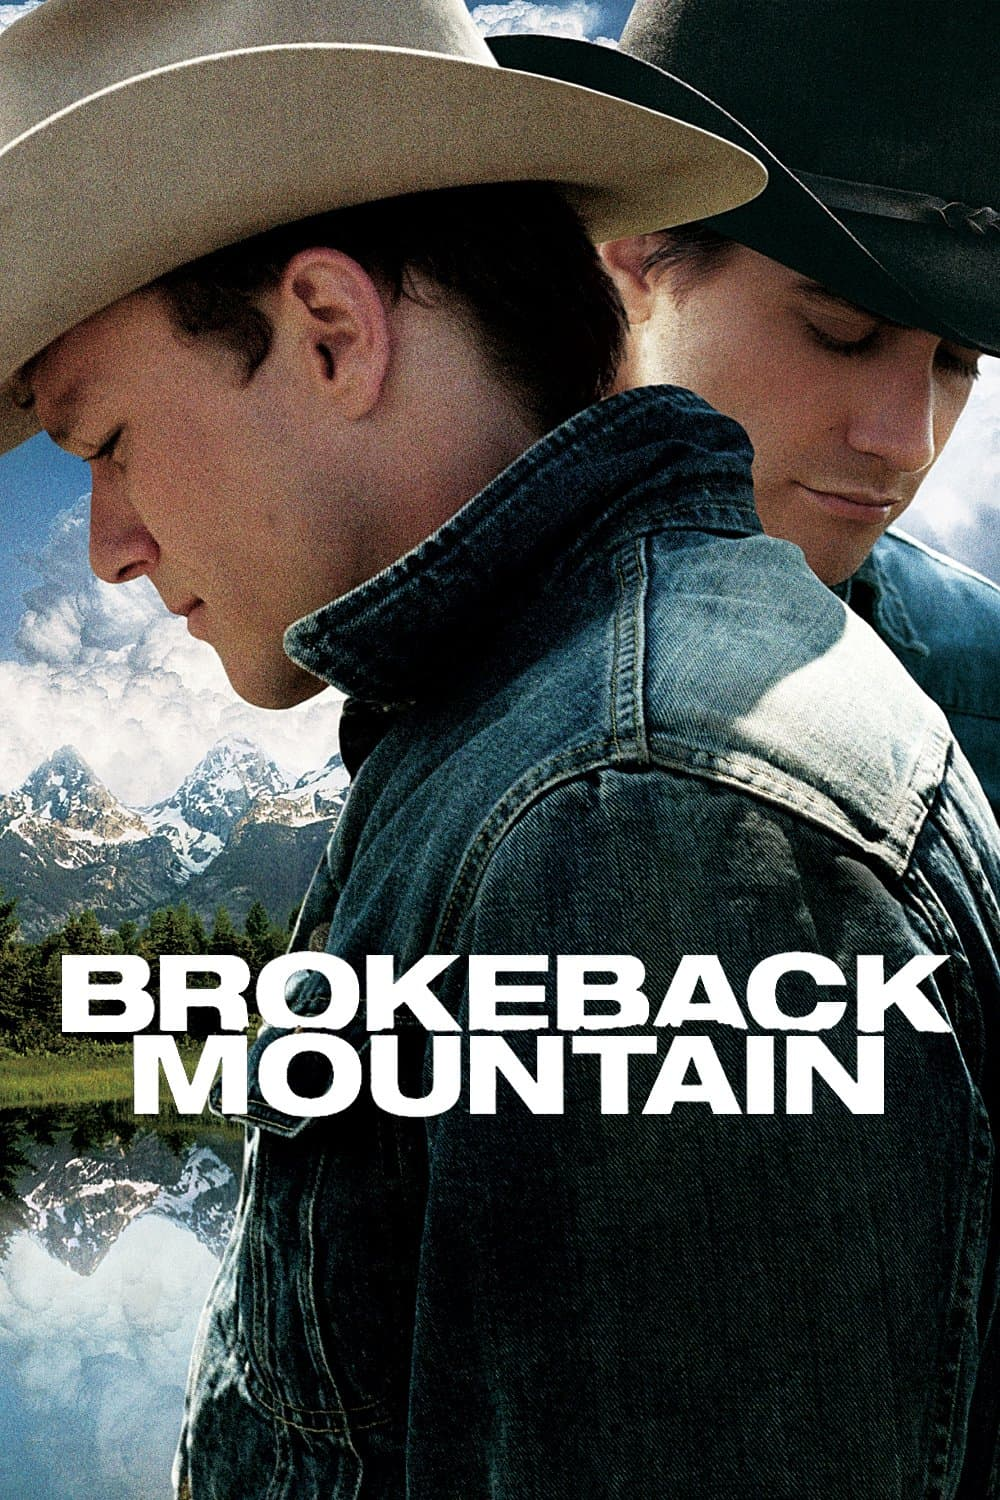 Brokeback Mountain, 2005